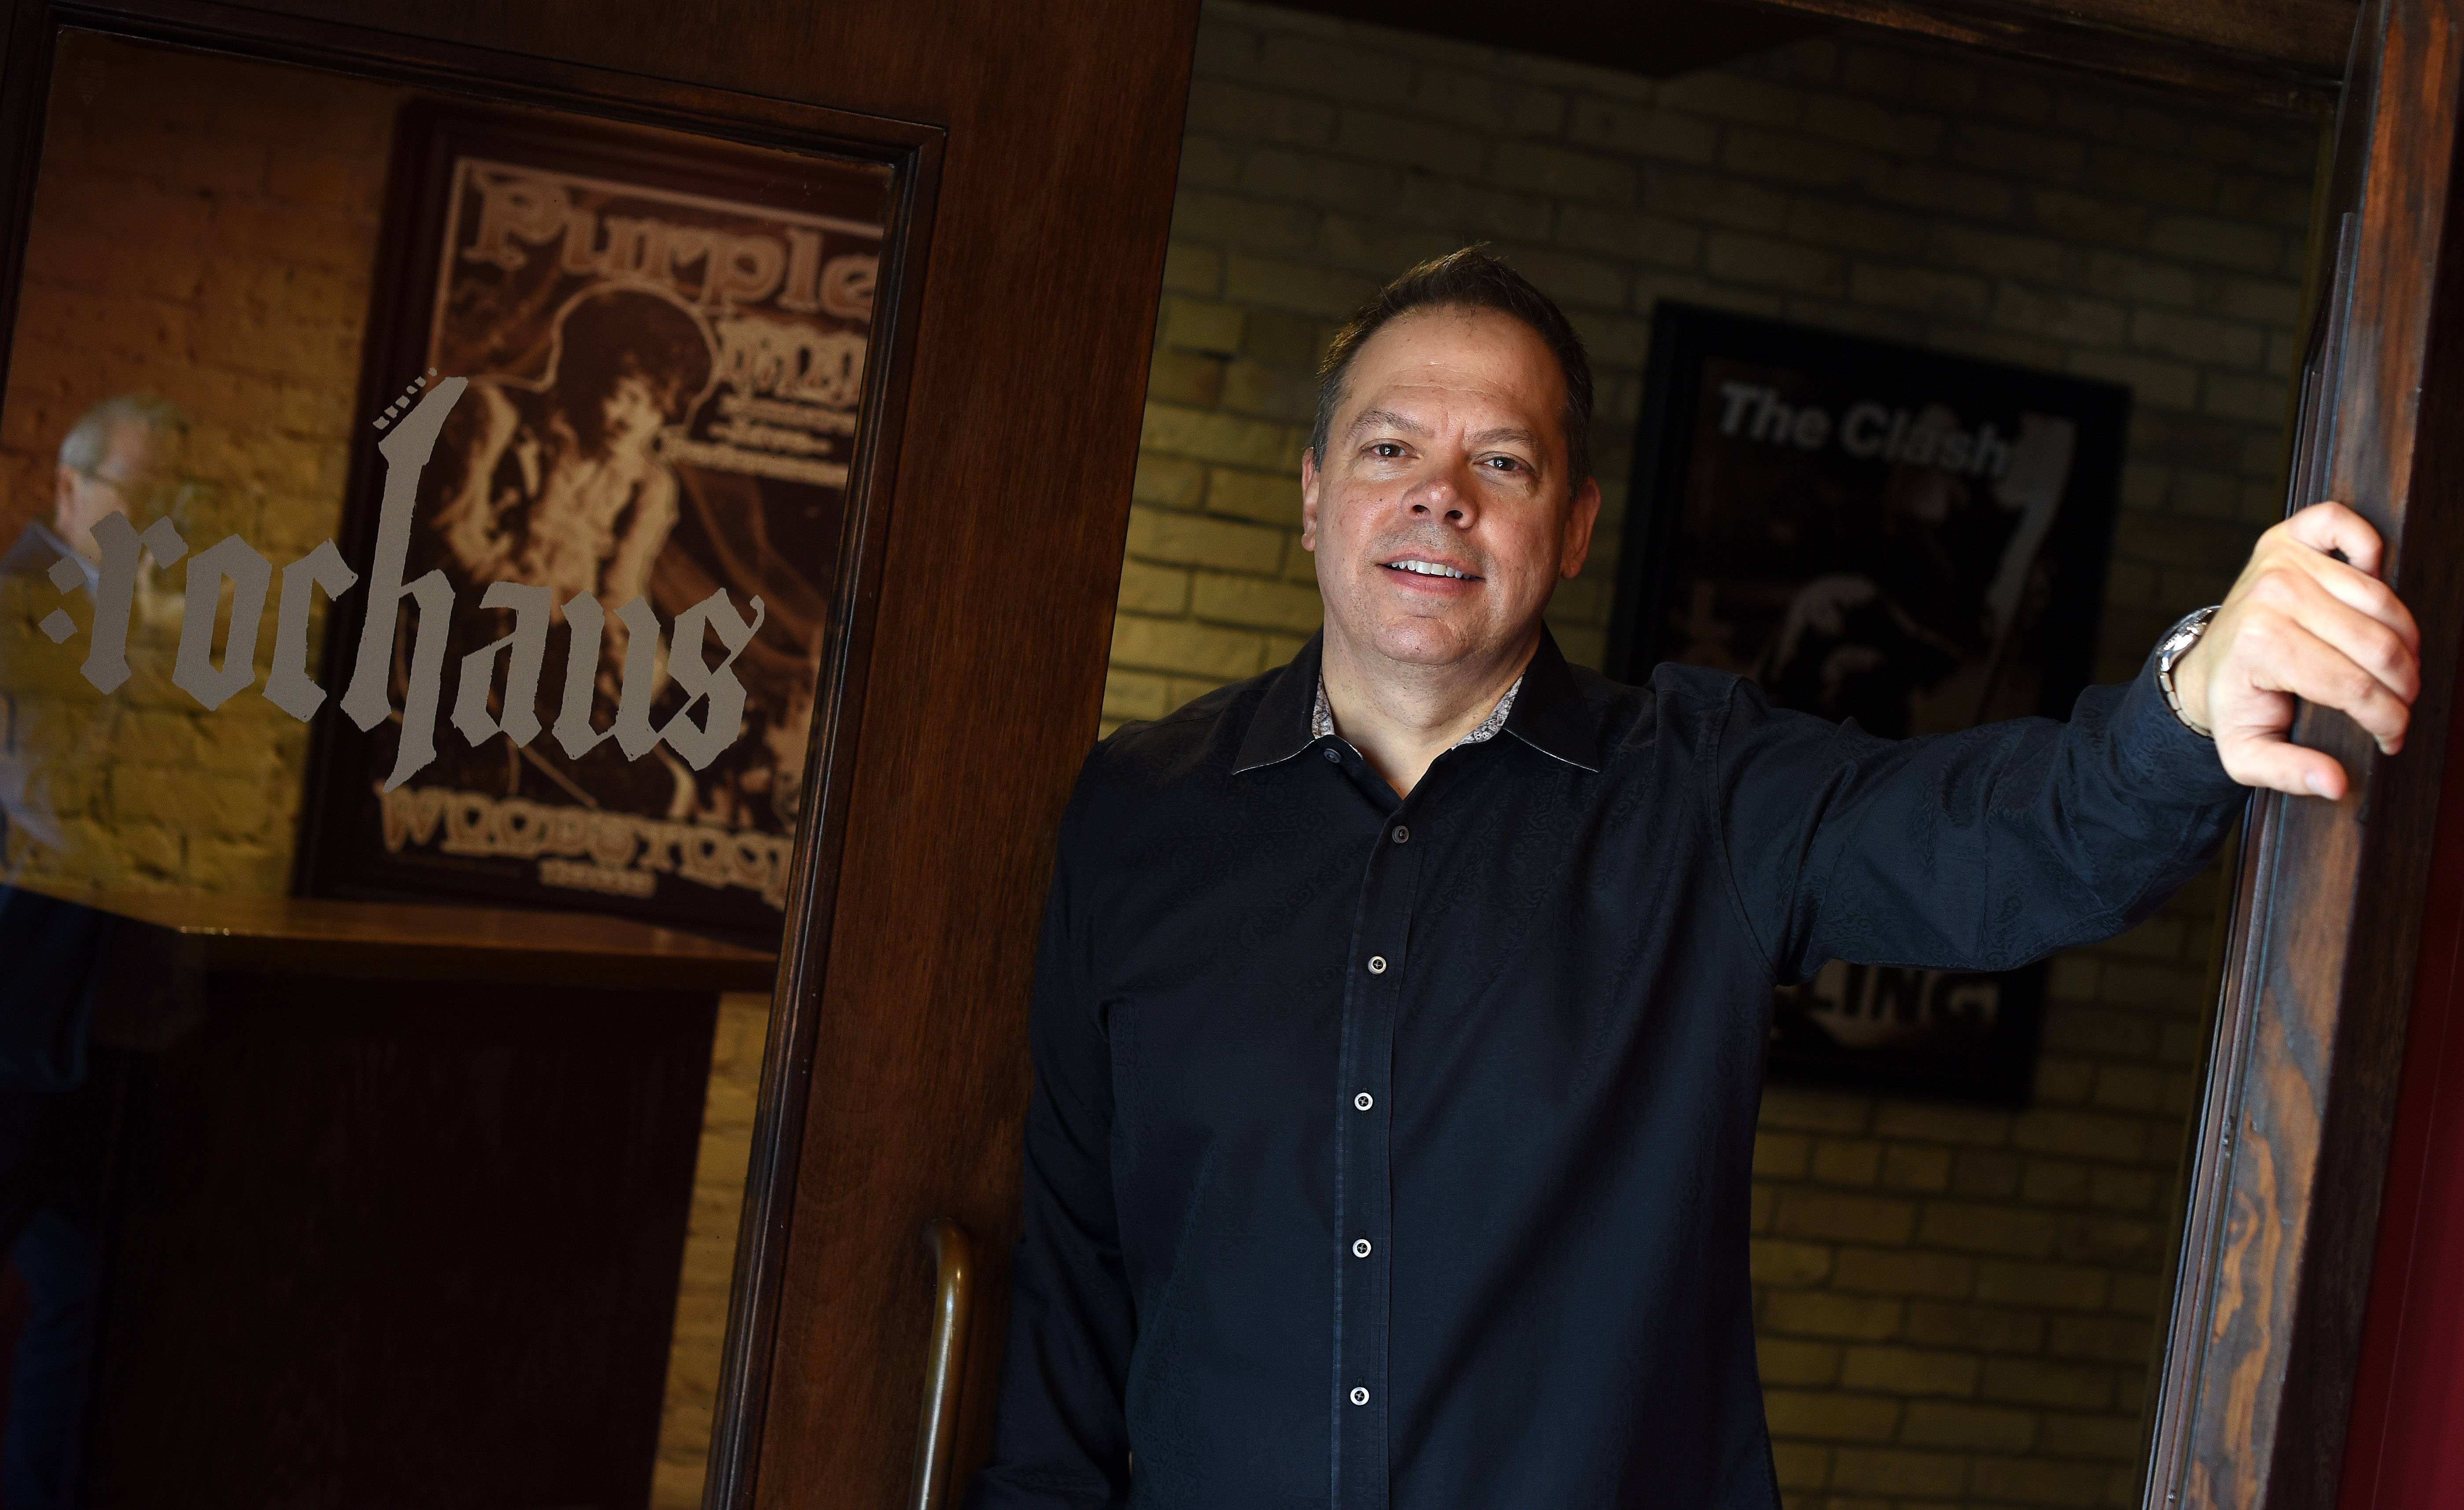 Five years after buying the building, owner Kevin Krak is ready to open the RocHaus theater in downtown West Dundee.